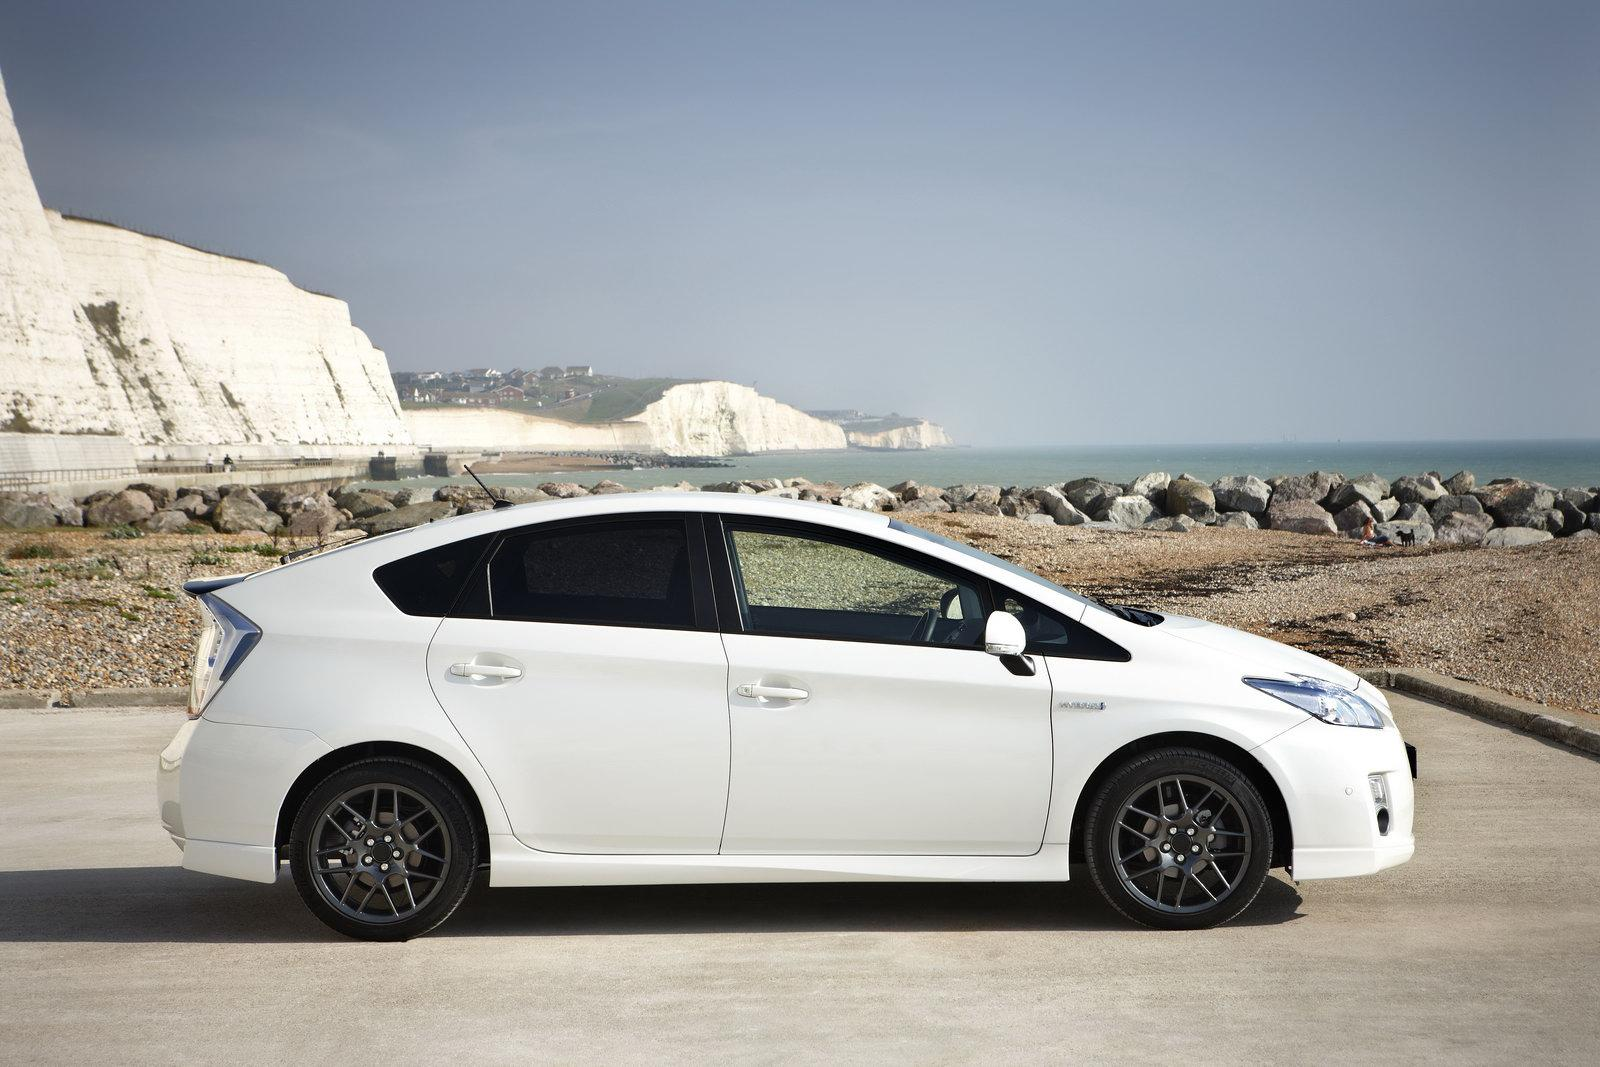 Exceptional Toyota Prius 2011 Review Explained